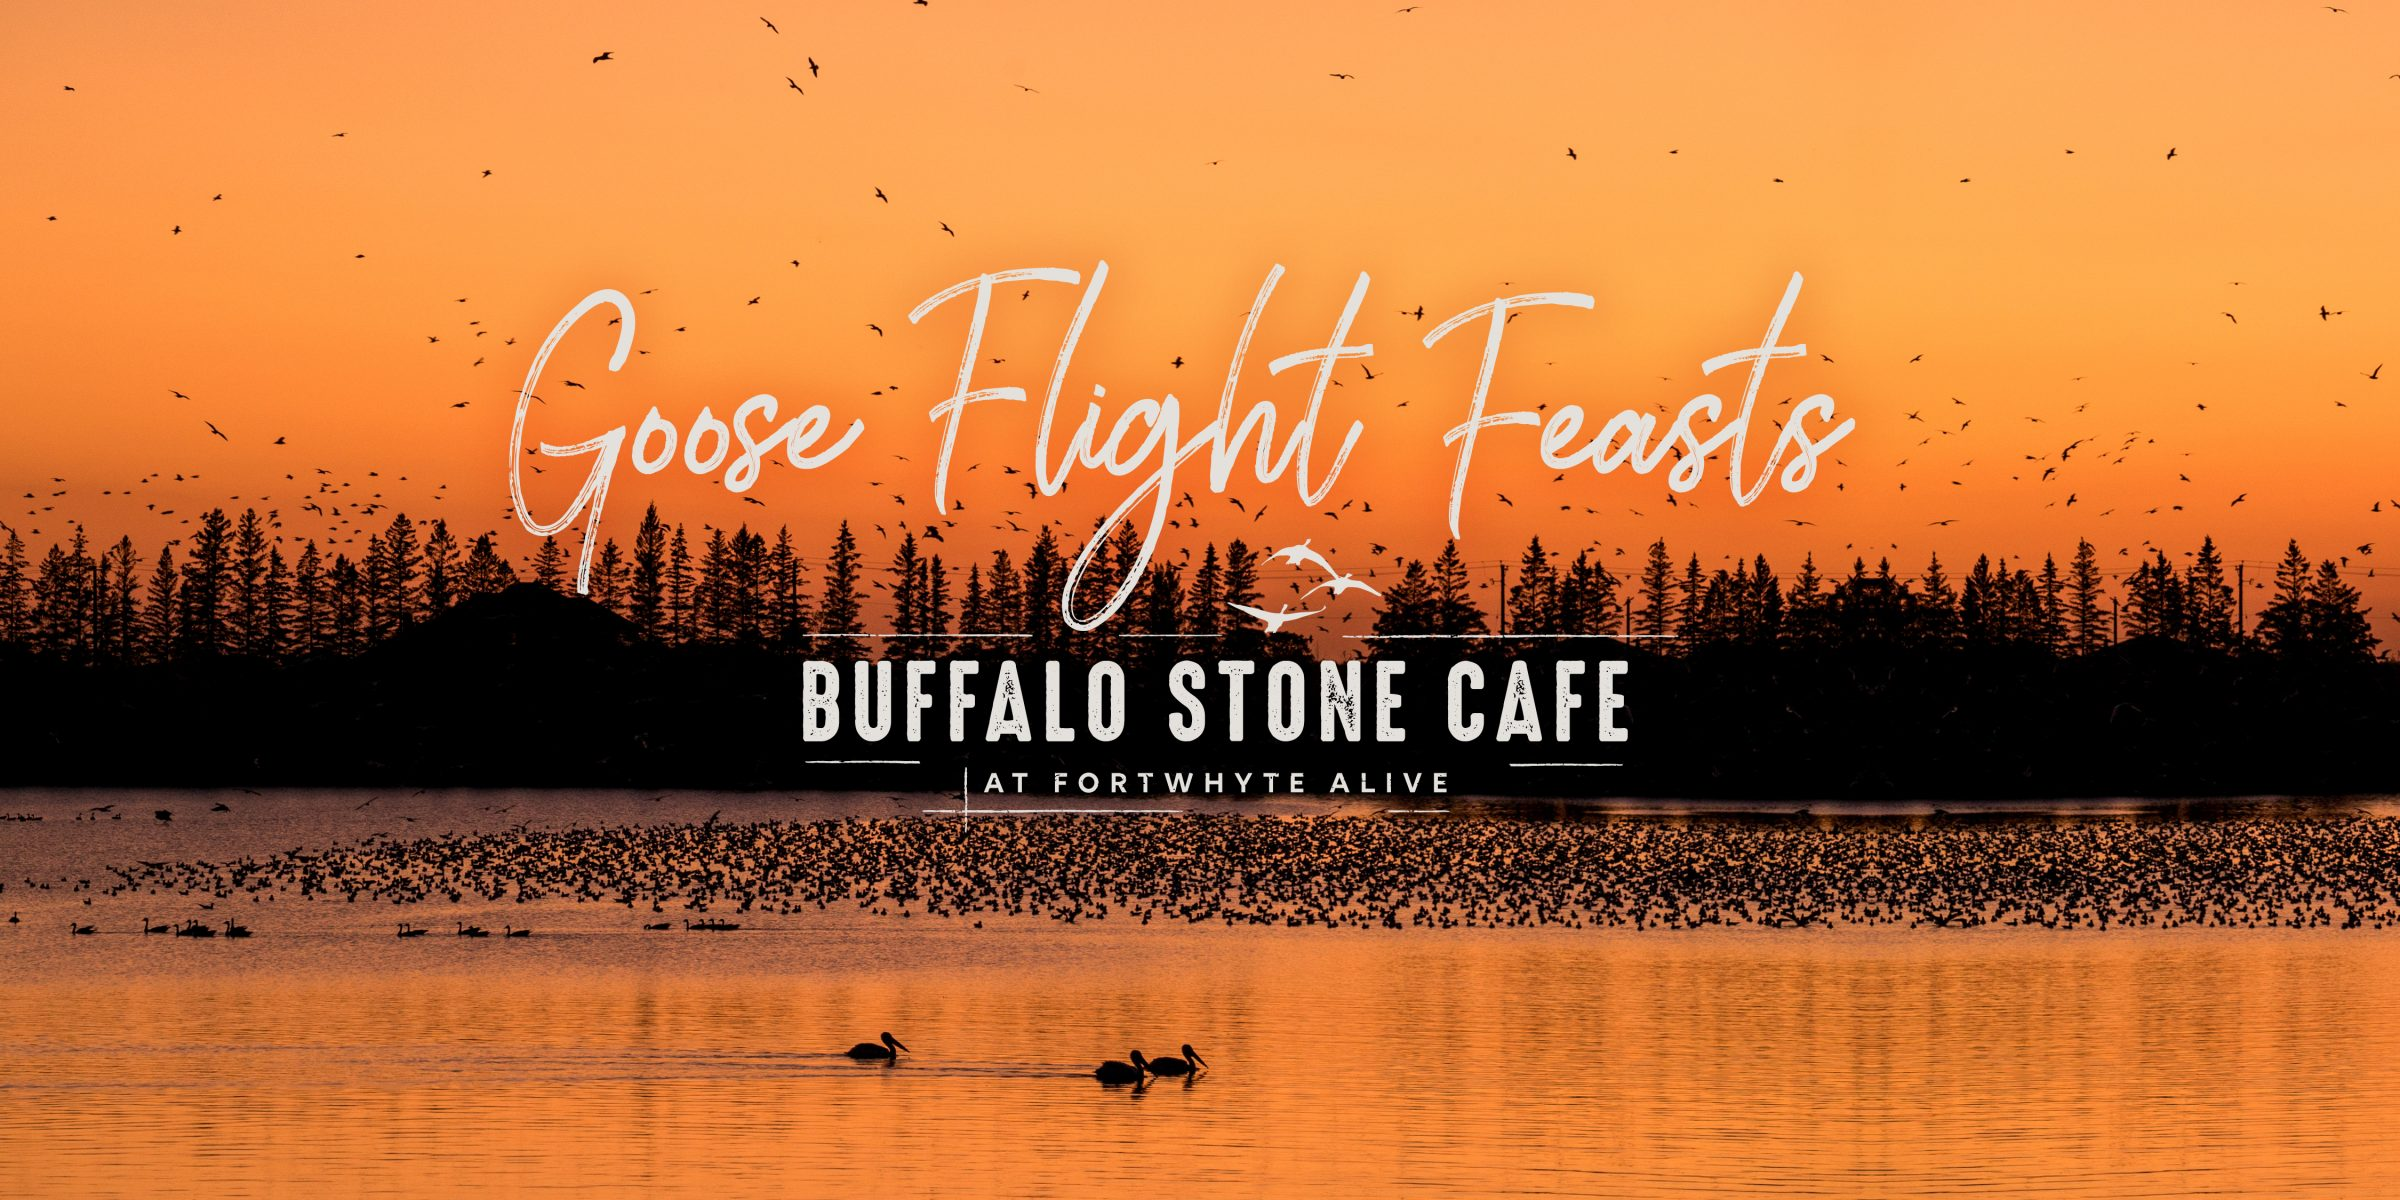 Goose Flight Feasts Buffalo Stone Cafe text on a photo of an orange sunset with silhouettes of geese landing on water.